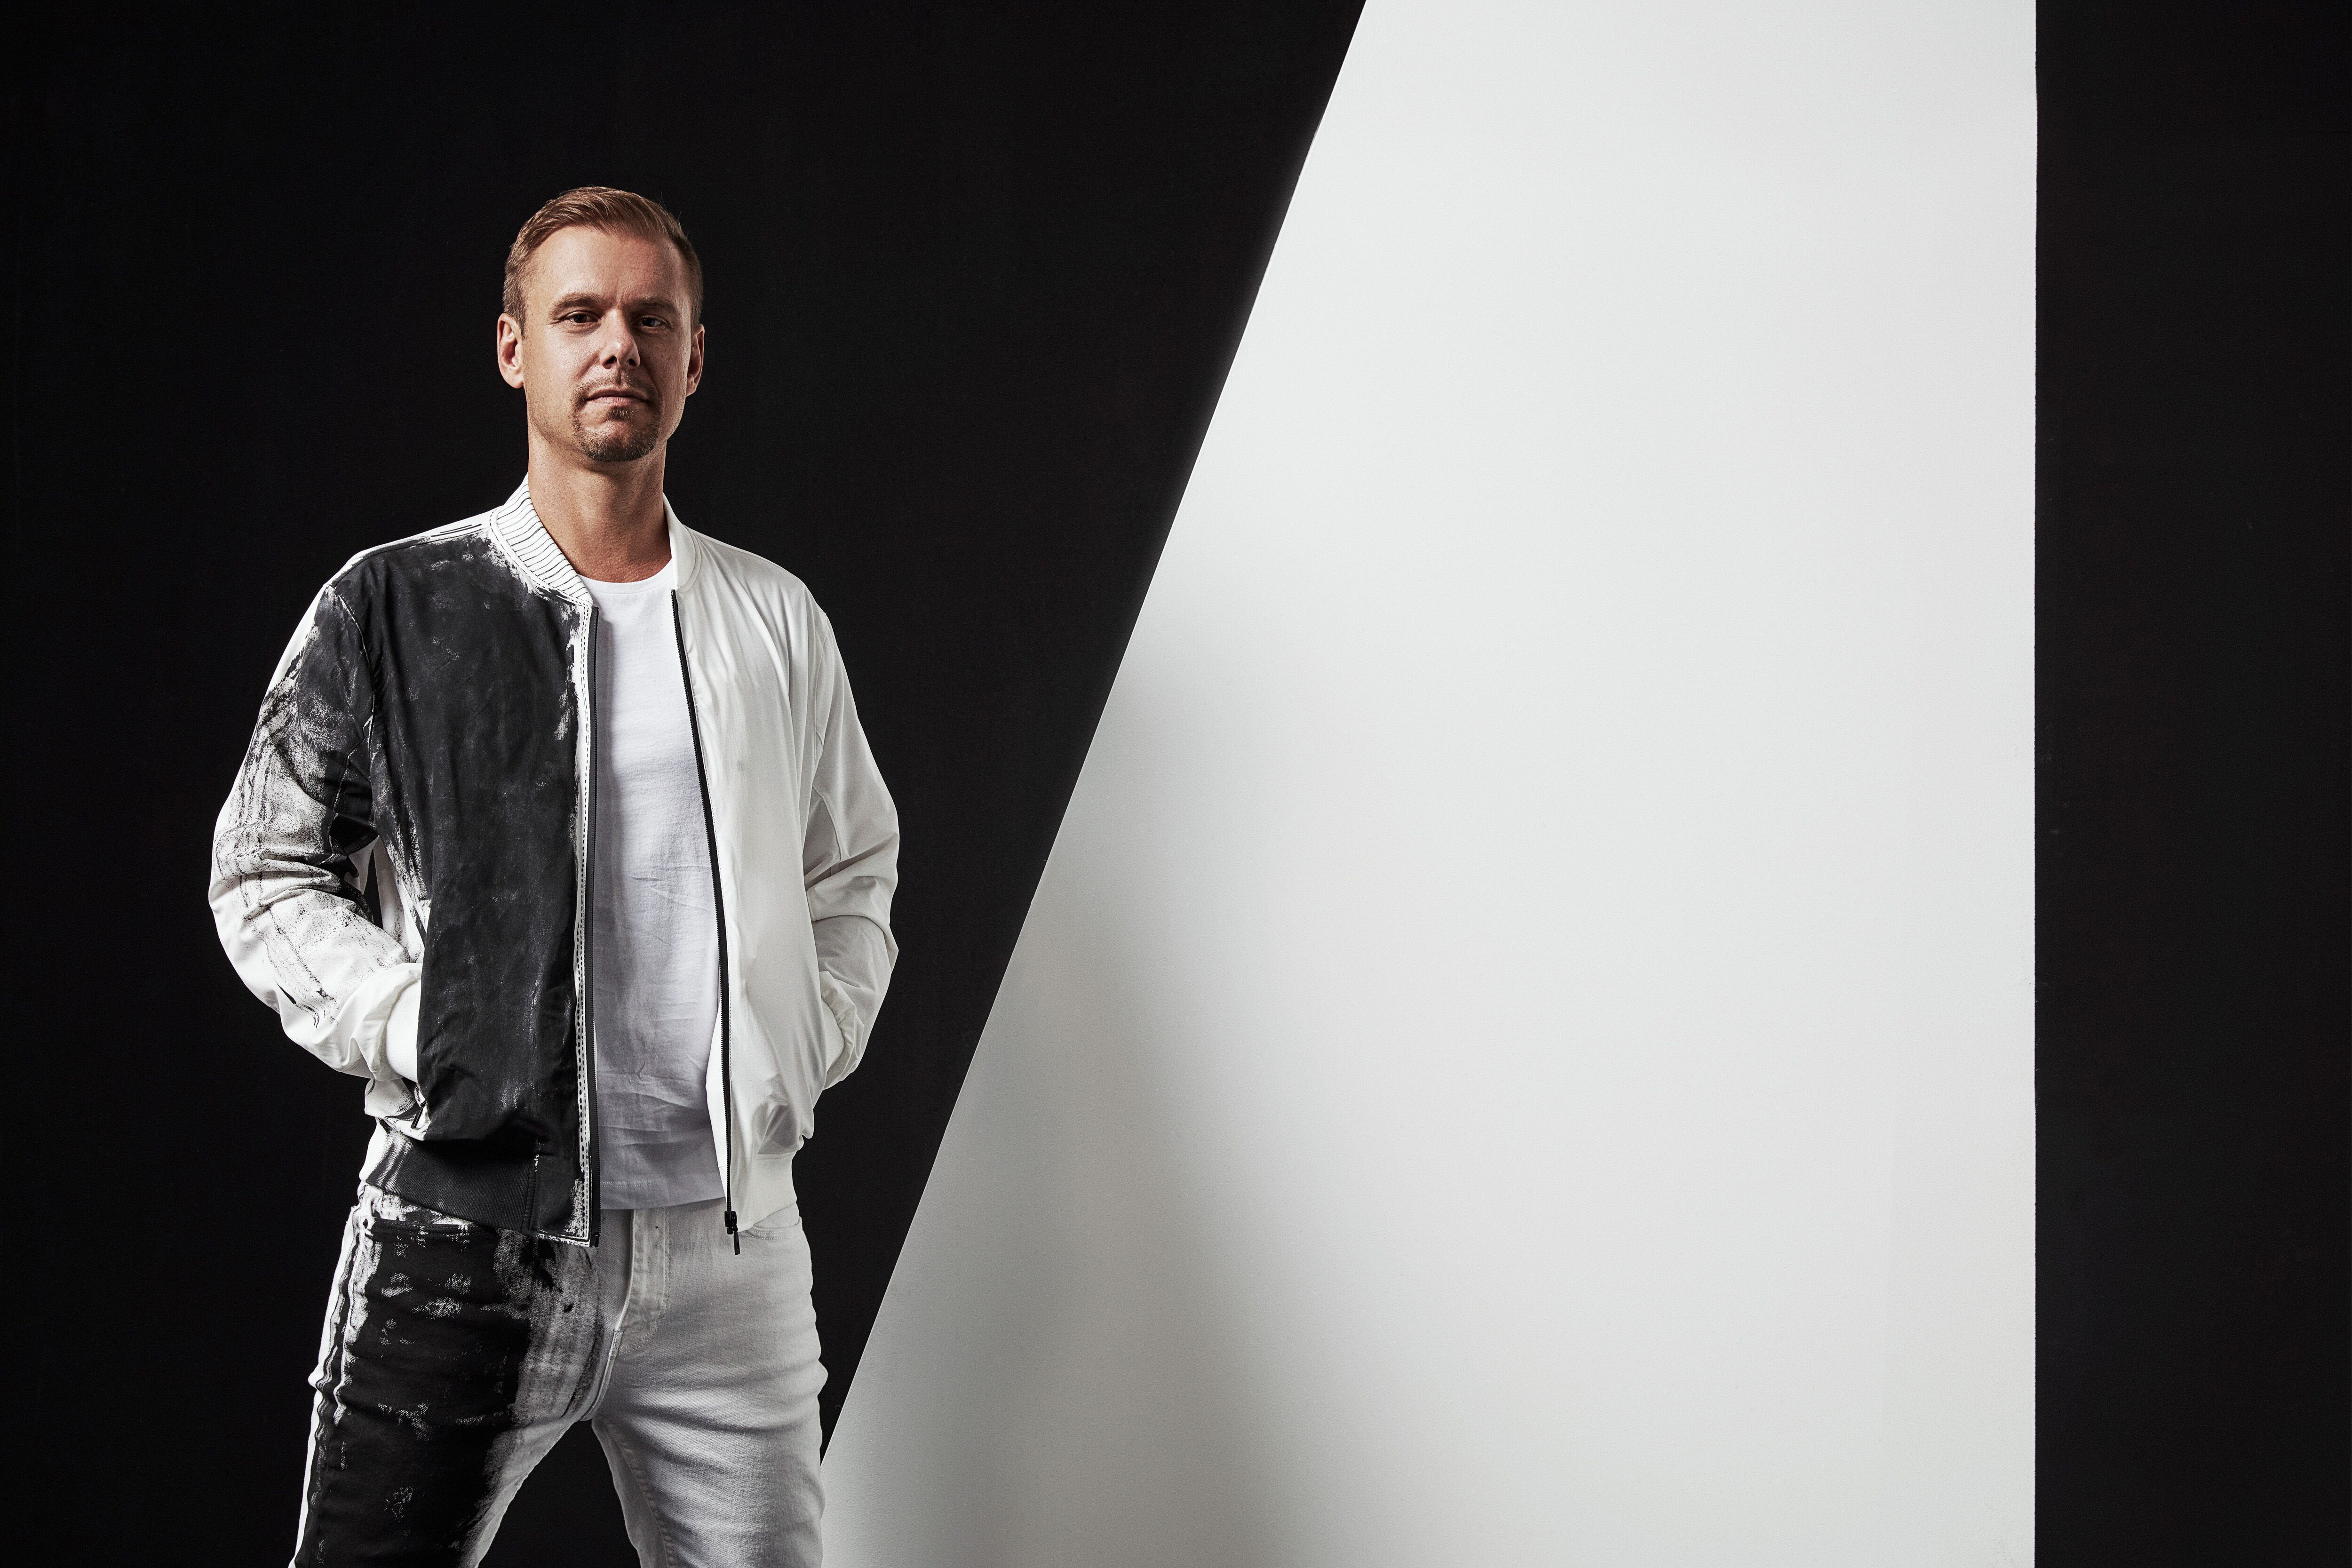 Armin Van Buuren Teams Up With Renowned Street Artists for Release of Seventh Artist Album: 'Balance'